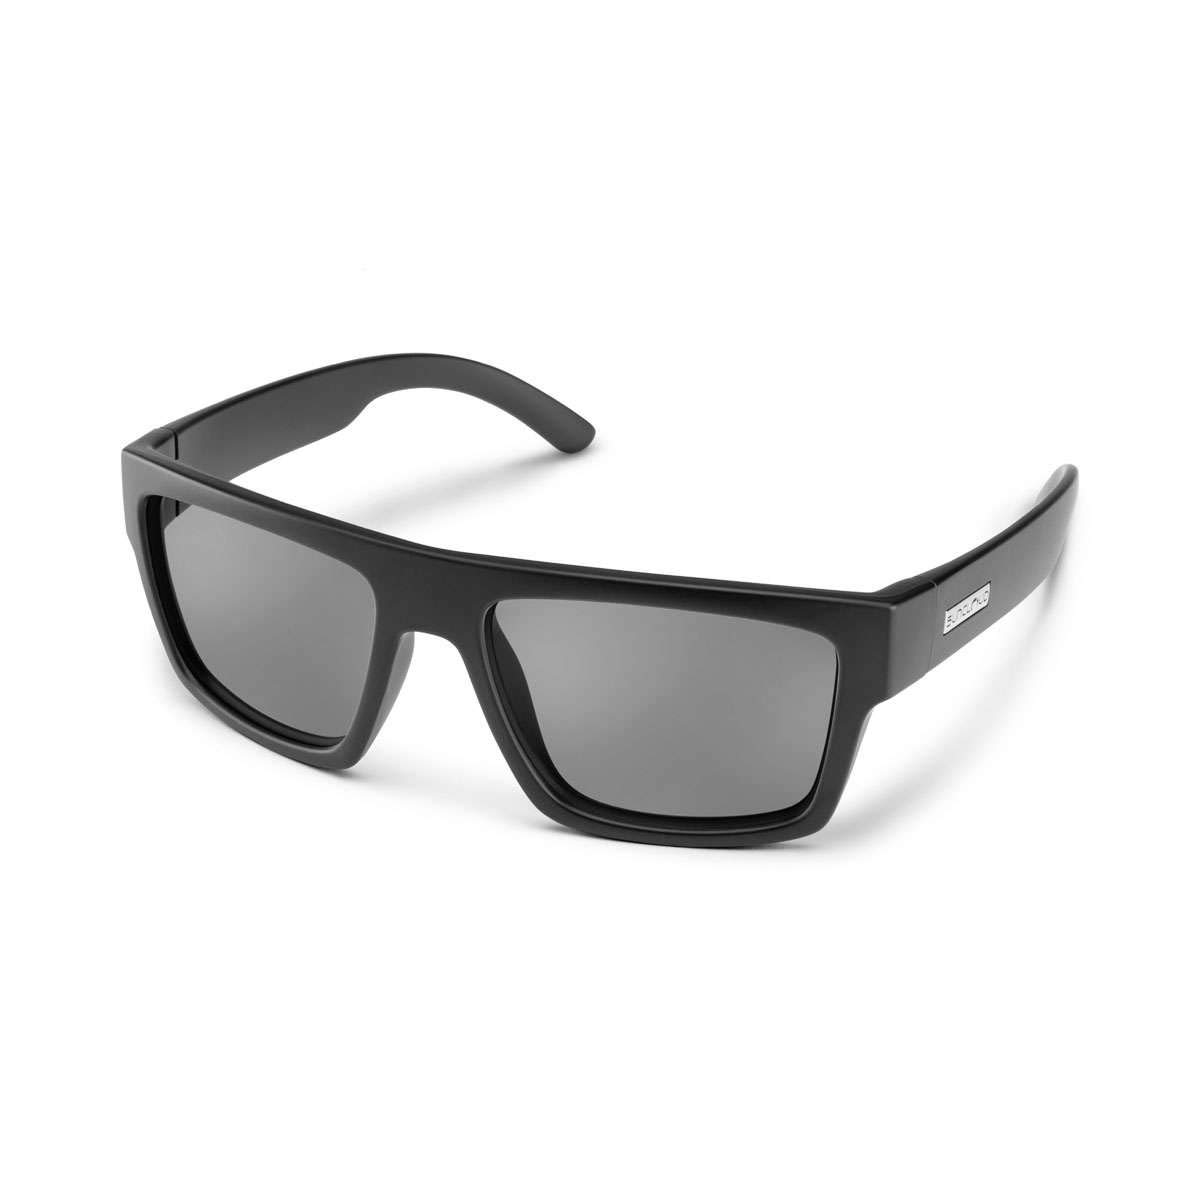 845071b45d Amazon.com  Flatline Polarized Sunglasses  Sports   Outdoors